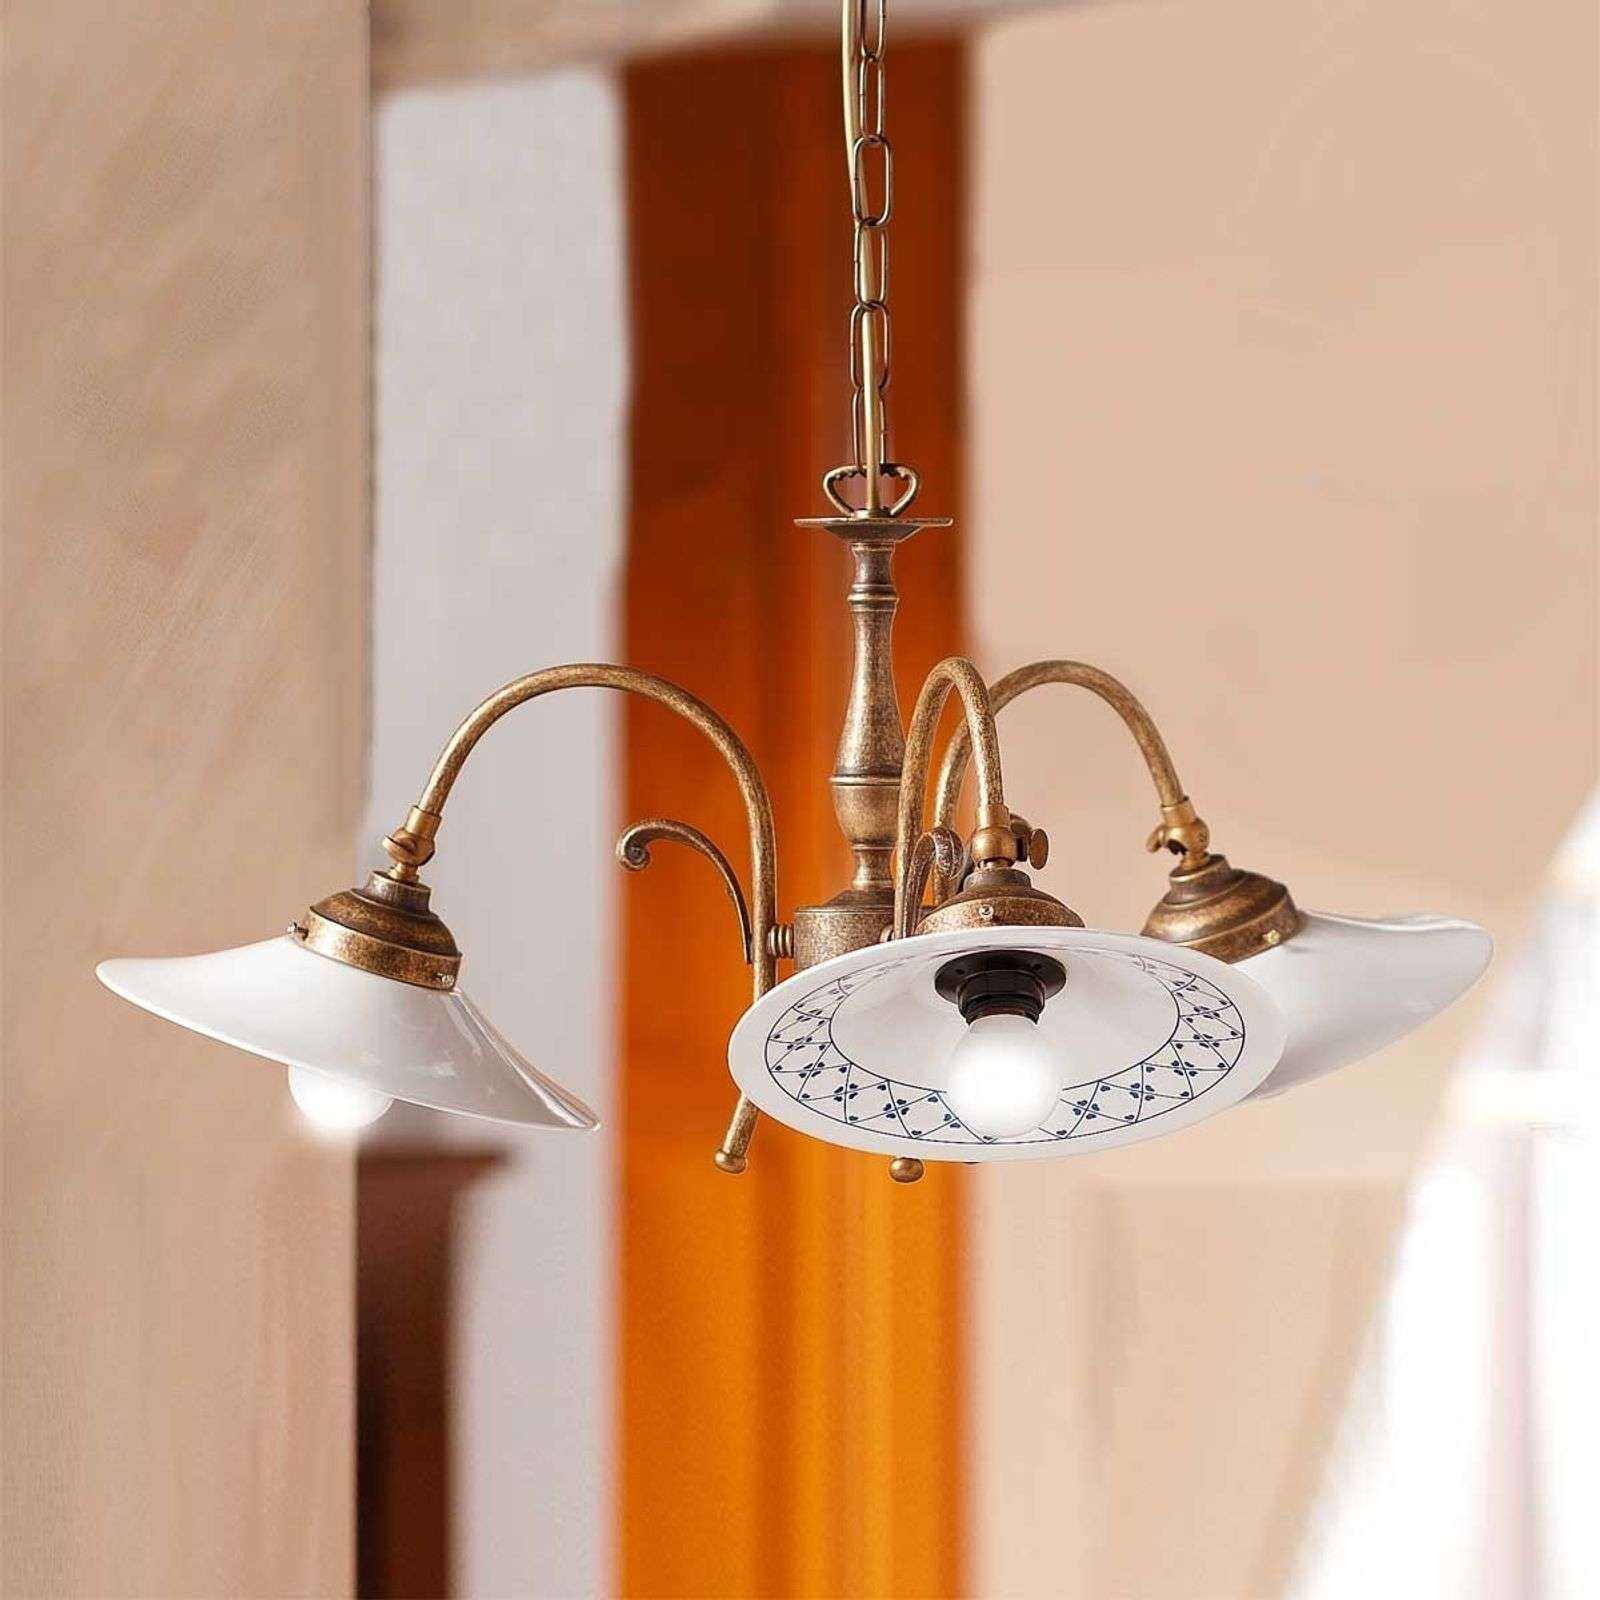 Suspension à 3 lampes ORLO campagnarde